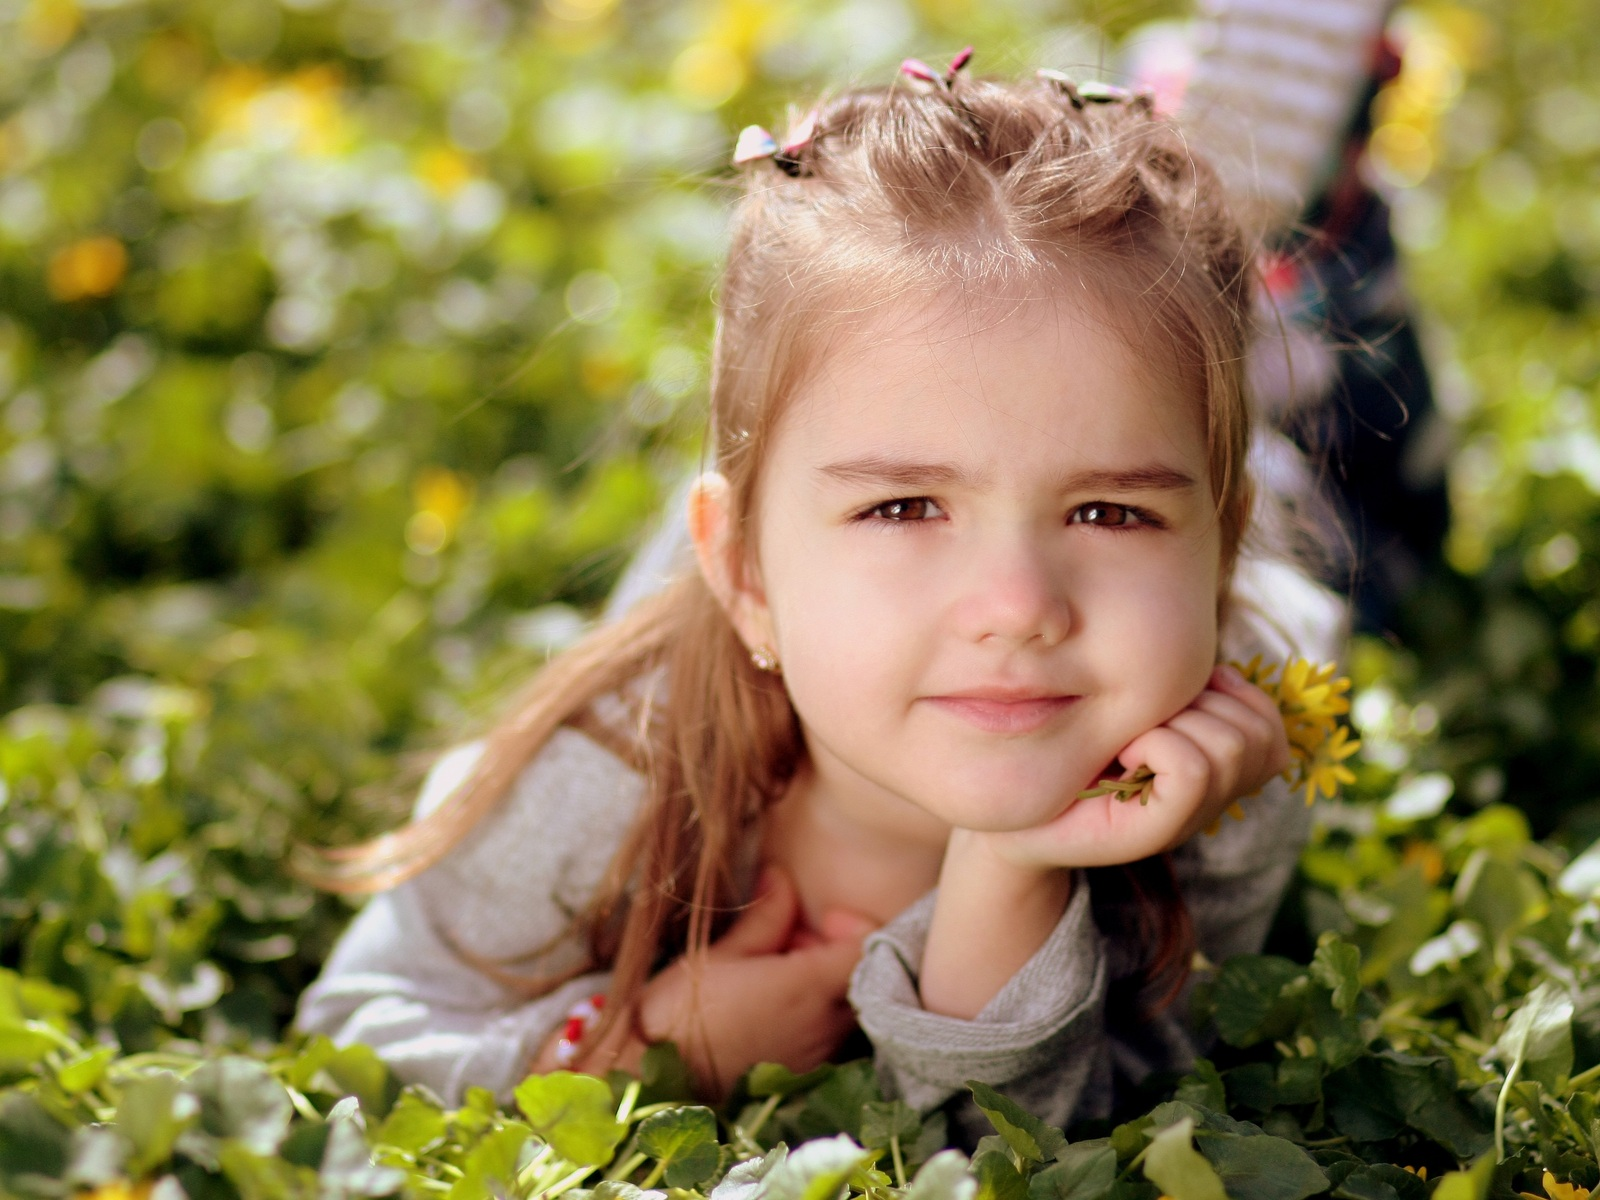 cute-kid-girl-toddler-f7.jpg